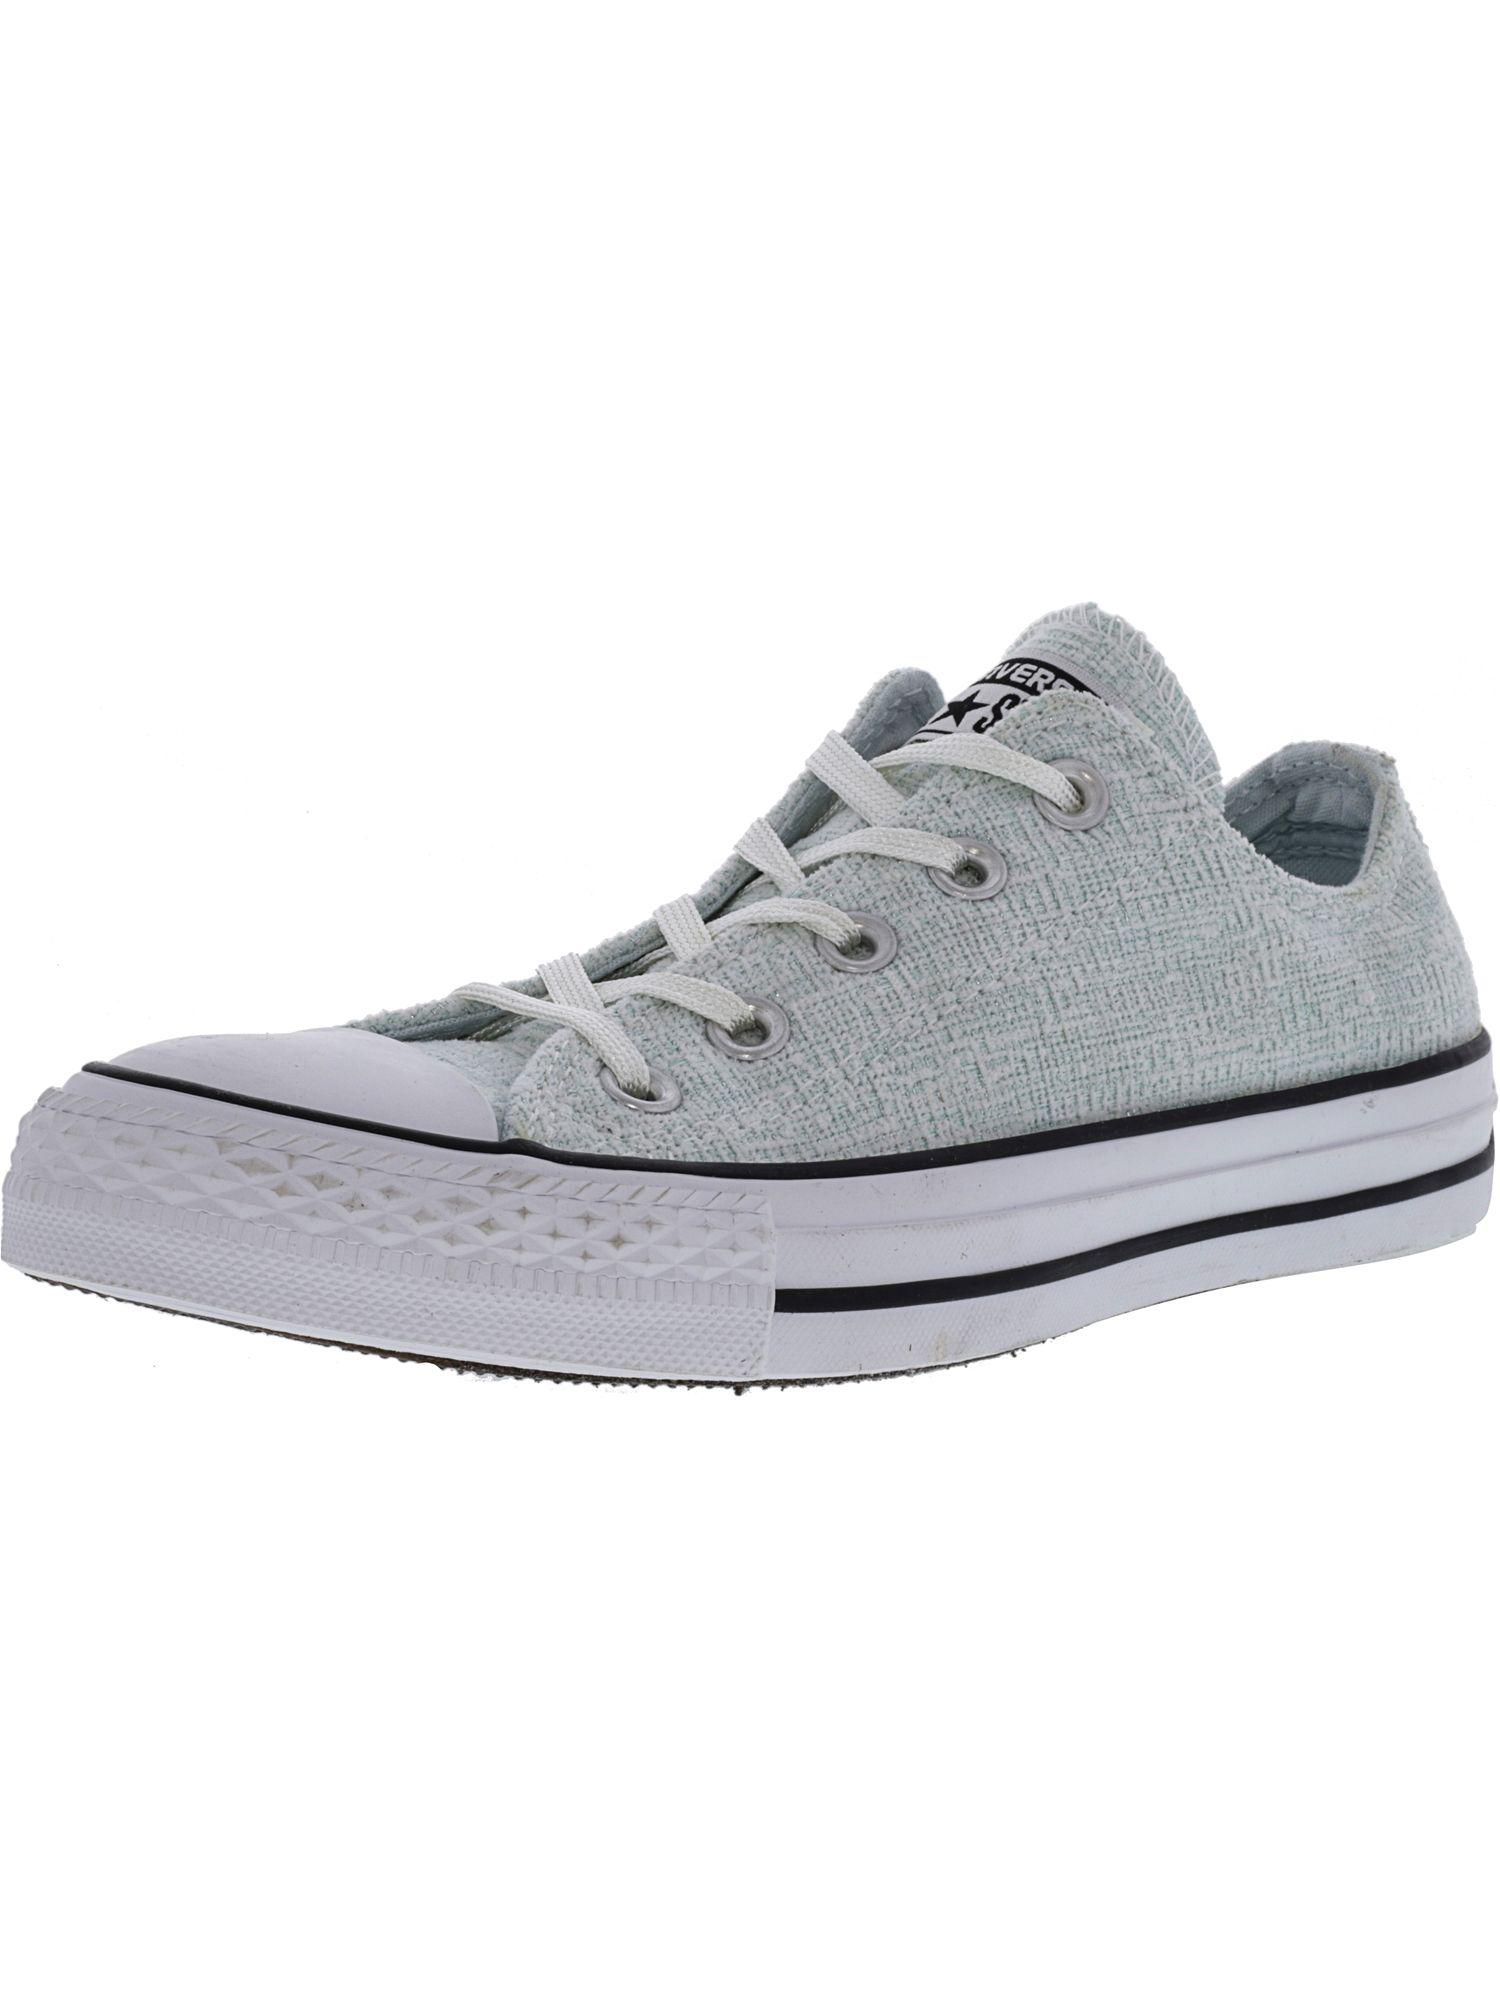 955ad75caf36 Converse. Women s Chuck Taylor All Star Sparkle Knit Ox Polar Blue   Black  White ...